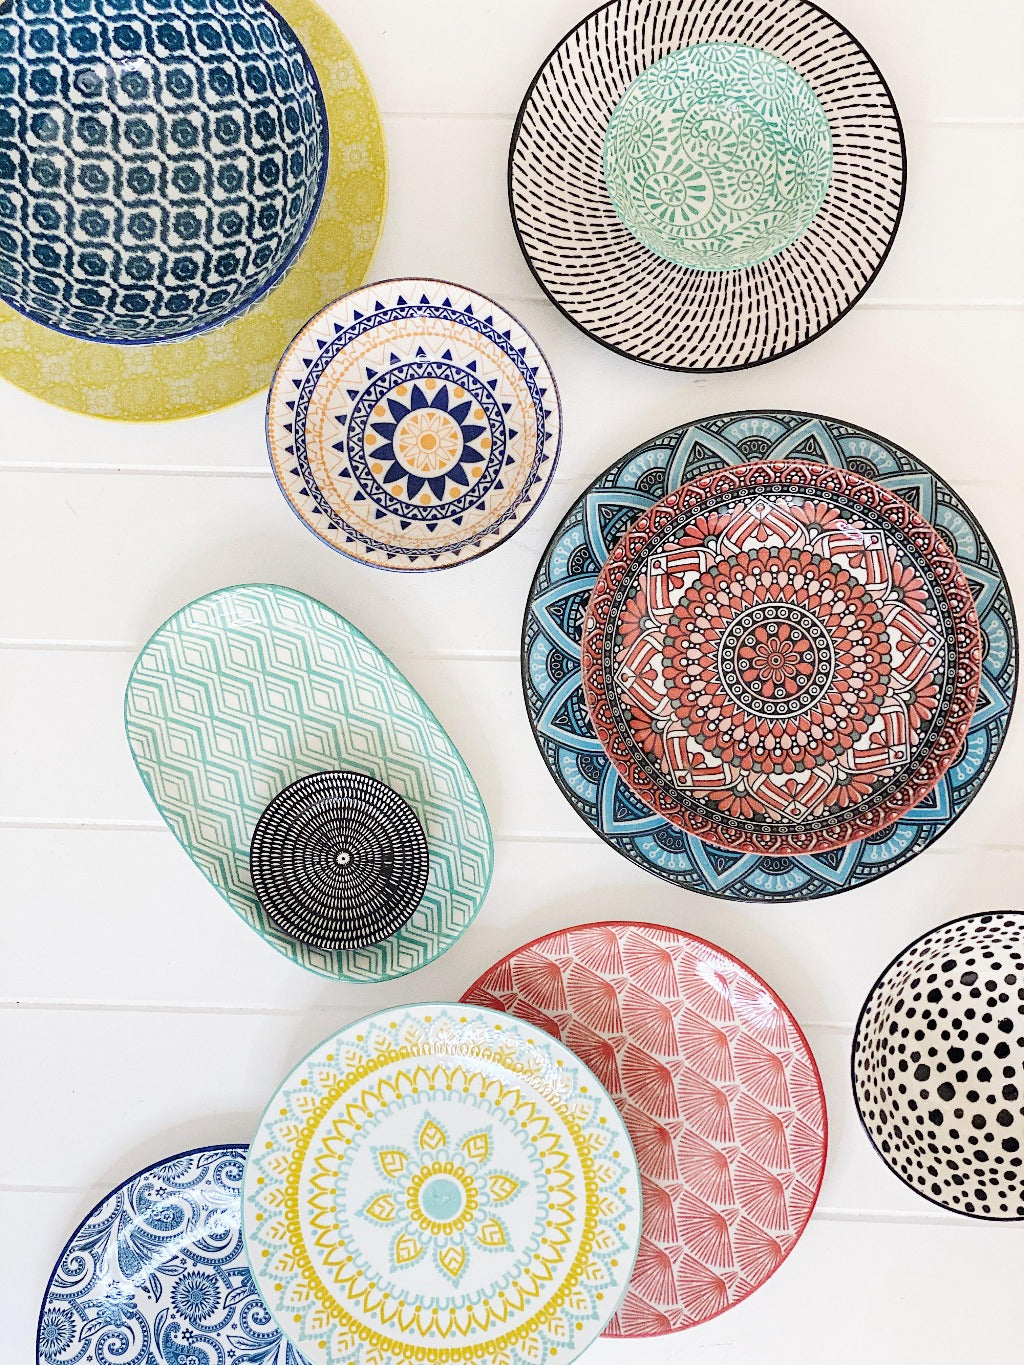 Moroccan Style Oval Plater – perfect for biscuits, desserts, skewers or a side salad - Moroccan Style Dinnerware - Mix & Match - 24cm(L)x15.5cm(W)x3cm(H) - wide range of colours and patterns - Commercial Grade quality - Patterns Picked at random | Bliss Gifts & Homewares - Unit 8, 259 Princes Hwy Ulladulla - Shop Online - 0427795959, 44541523 - Australia wide shipping – AfterPay Available